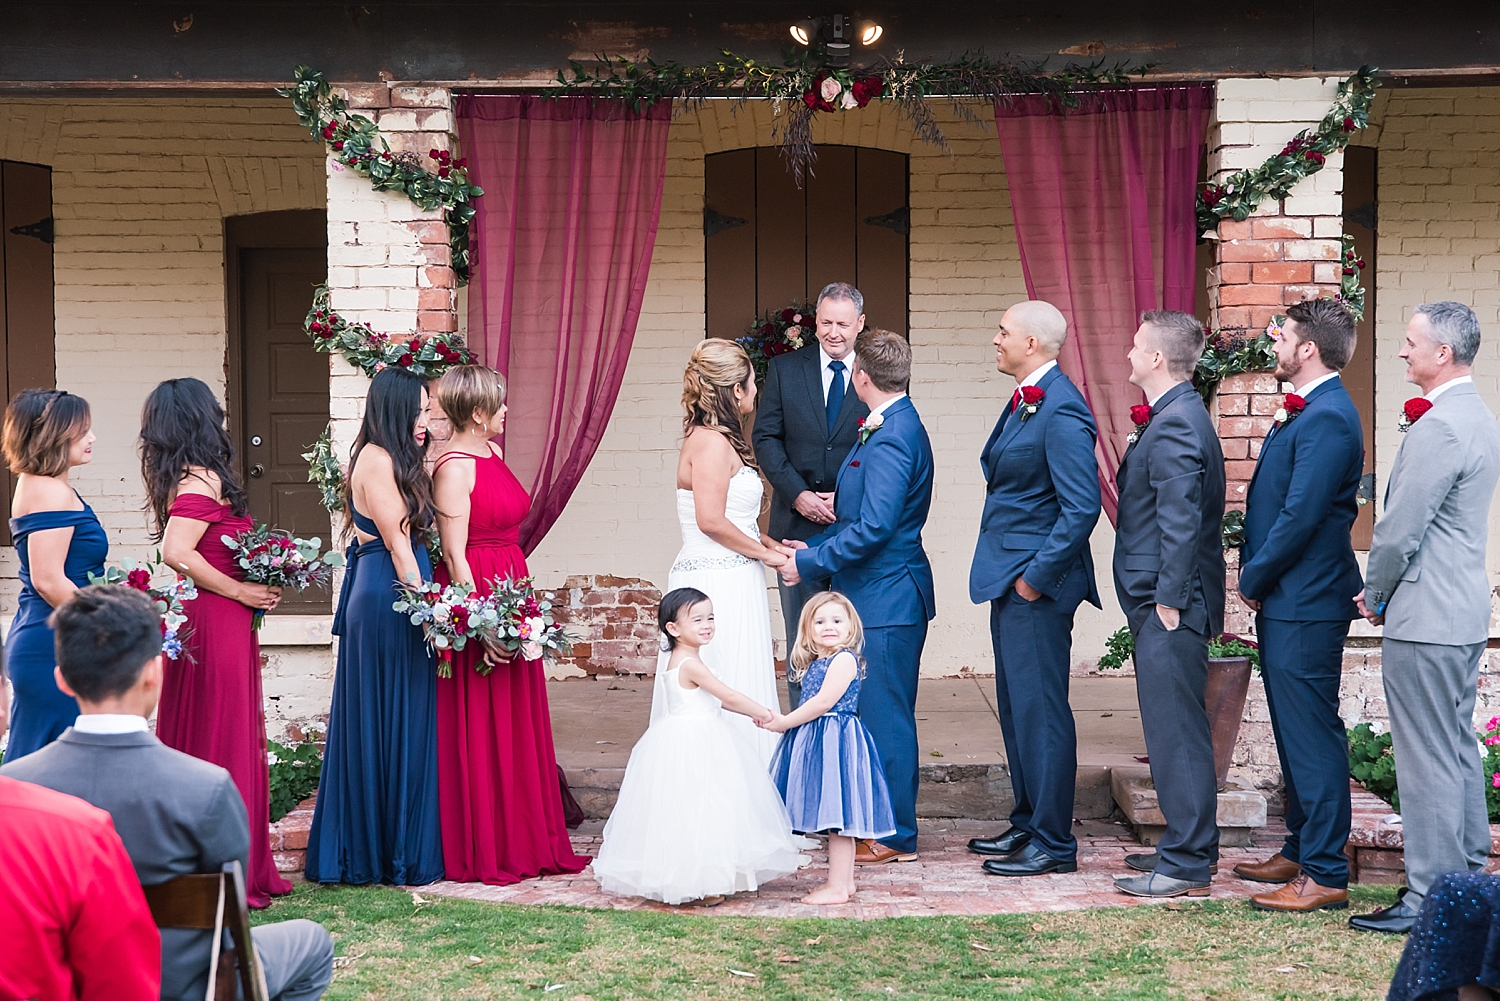 That's Kevin's Dad (Andrew) posing as the officiant for the wedding ceremony. We were all cracking jokes as we stood there. The adorable little girls standing with us are MacKenzie and Reese...they wanted to be part of the action.